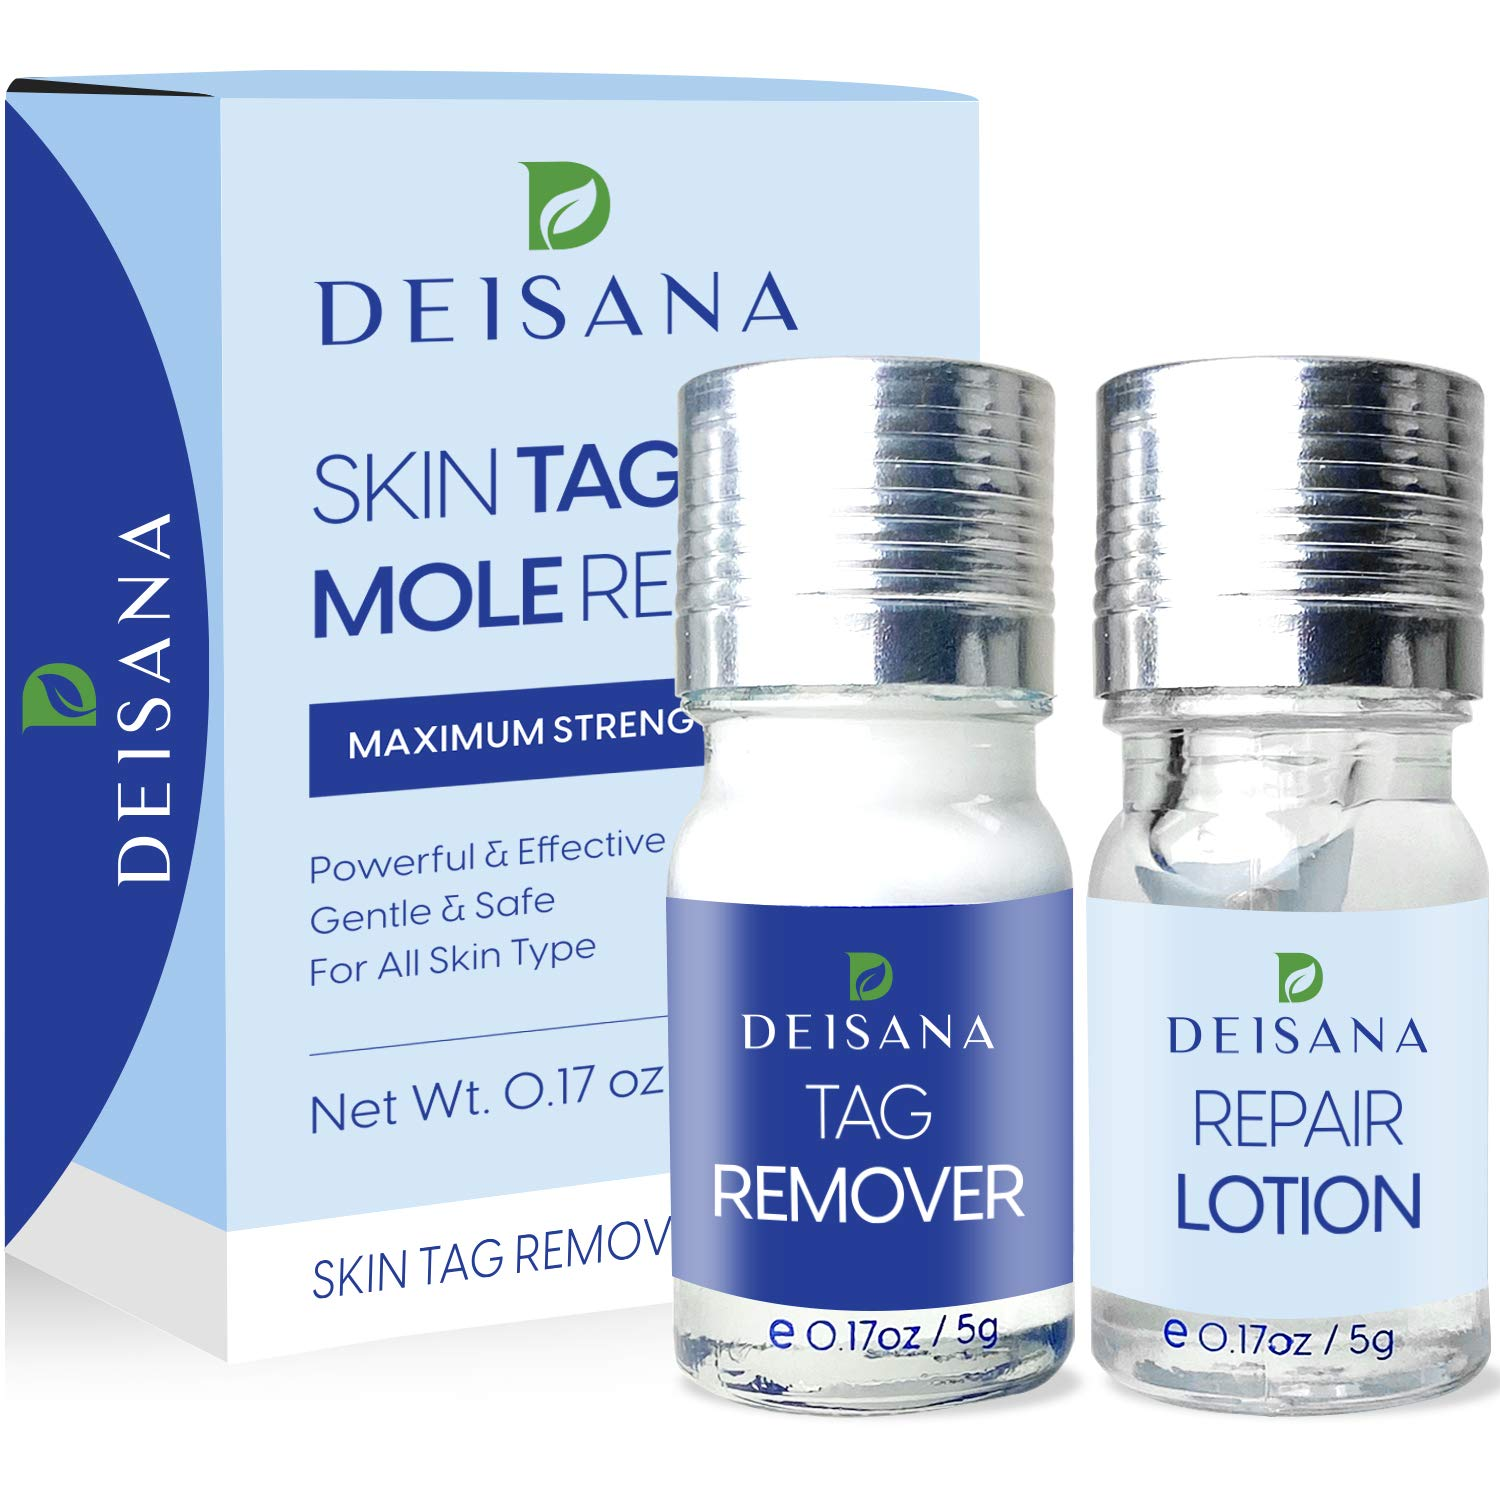 Skin Tag Remover, Mole Remover and Repair Gel Set, Skin Tag Removal Treatment, Mole Corrector, Easy at Home Use